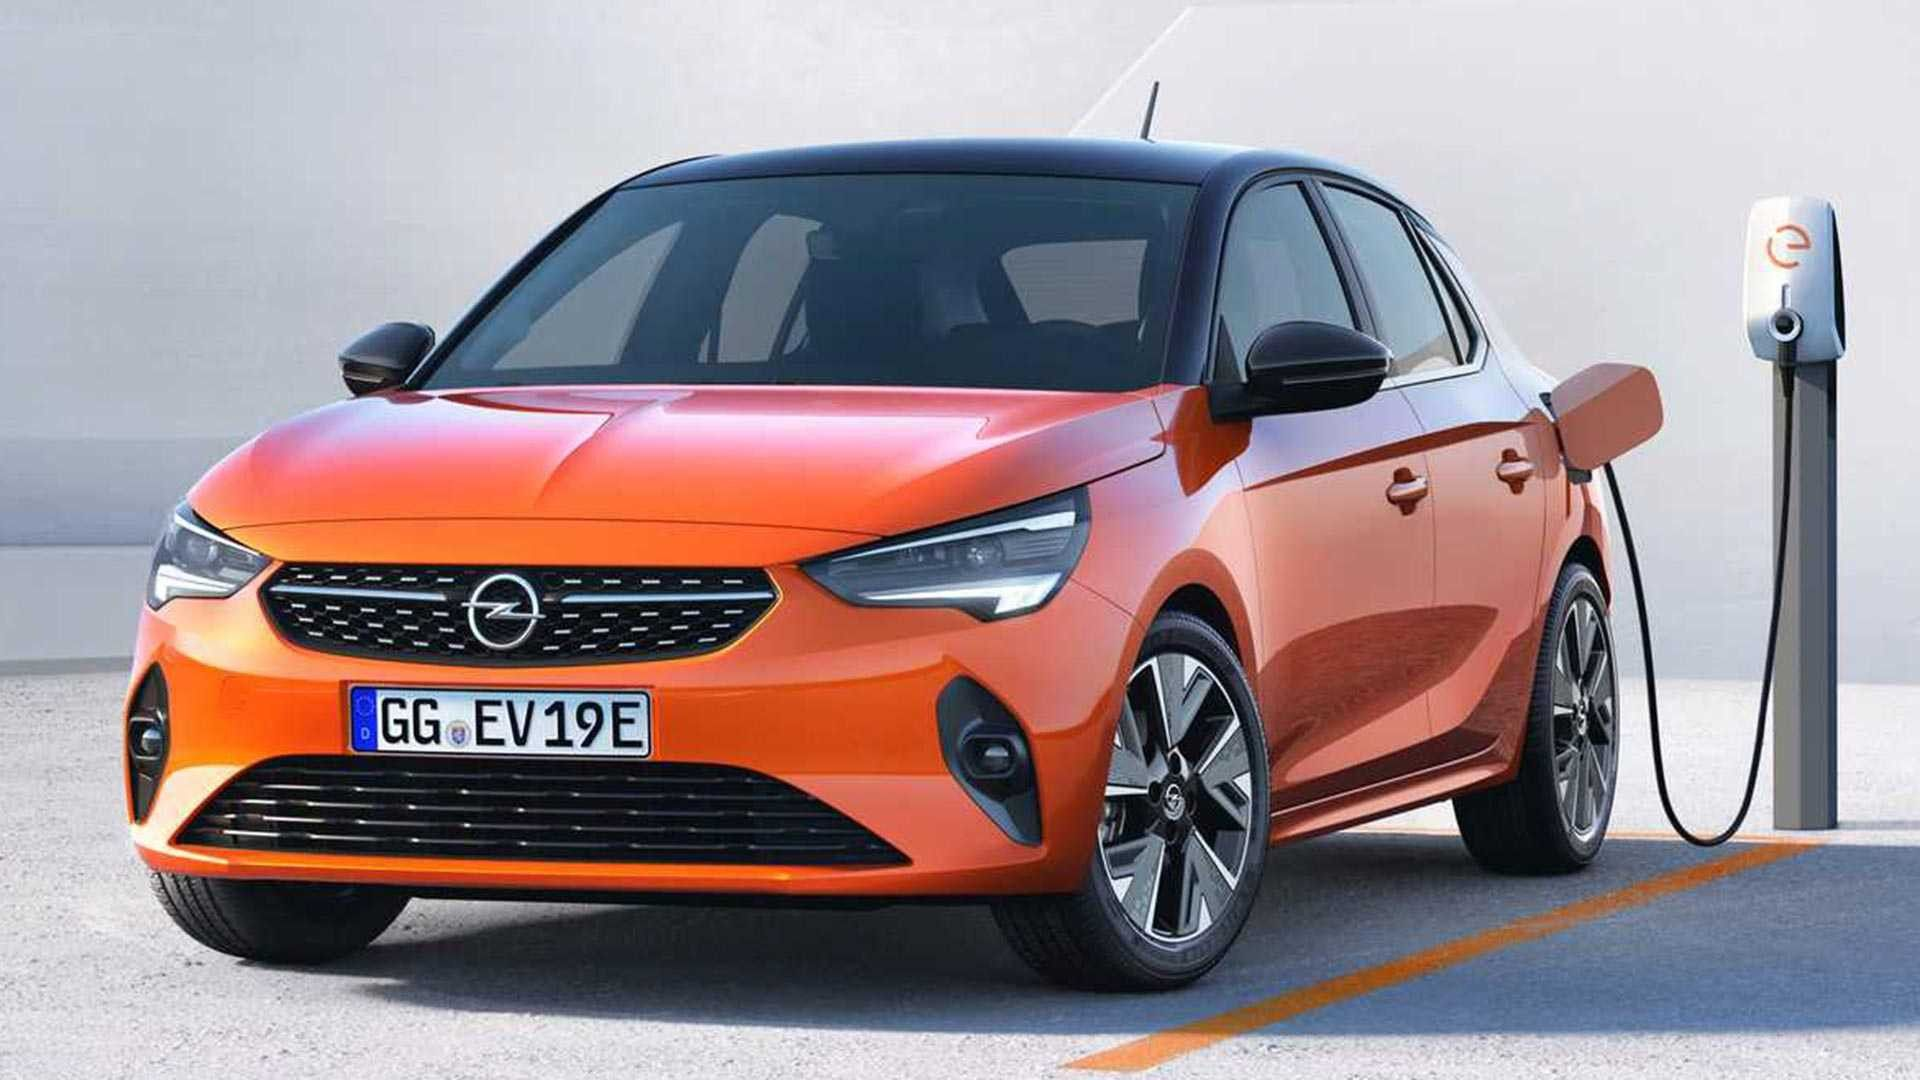 Opel Will Launch Corsa Ev In 2020 Review And Specs For Opel Will Launch Corsa Ev In 2020 First Drive Di 2020